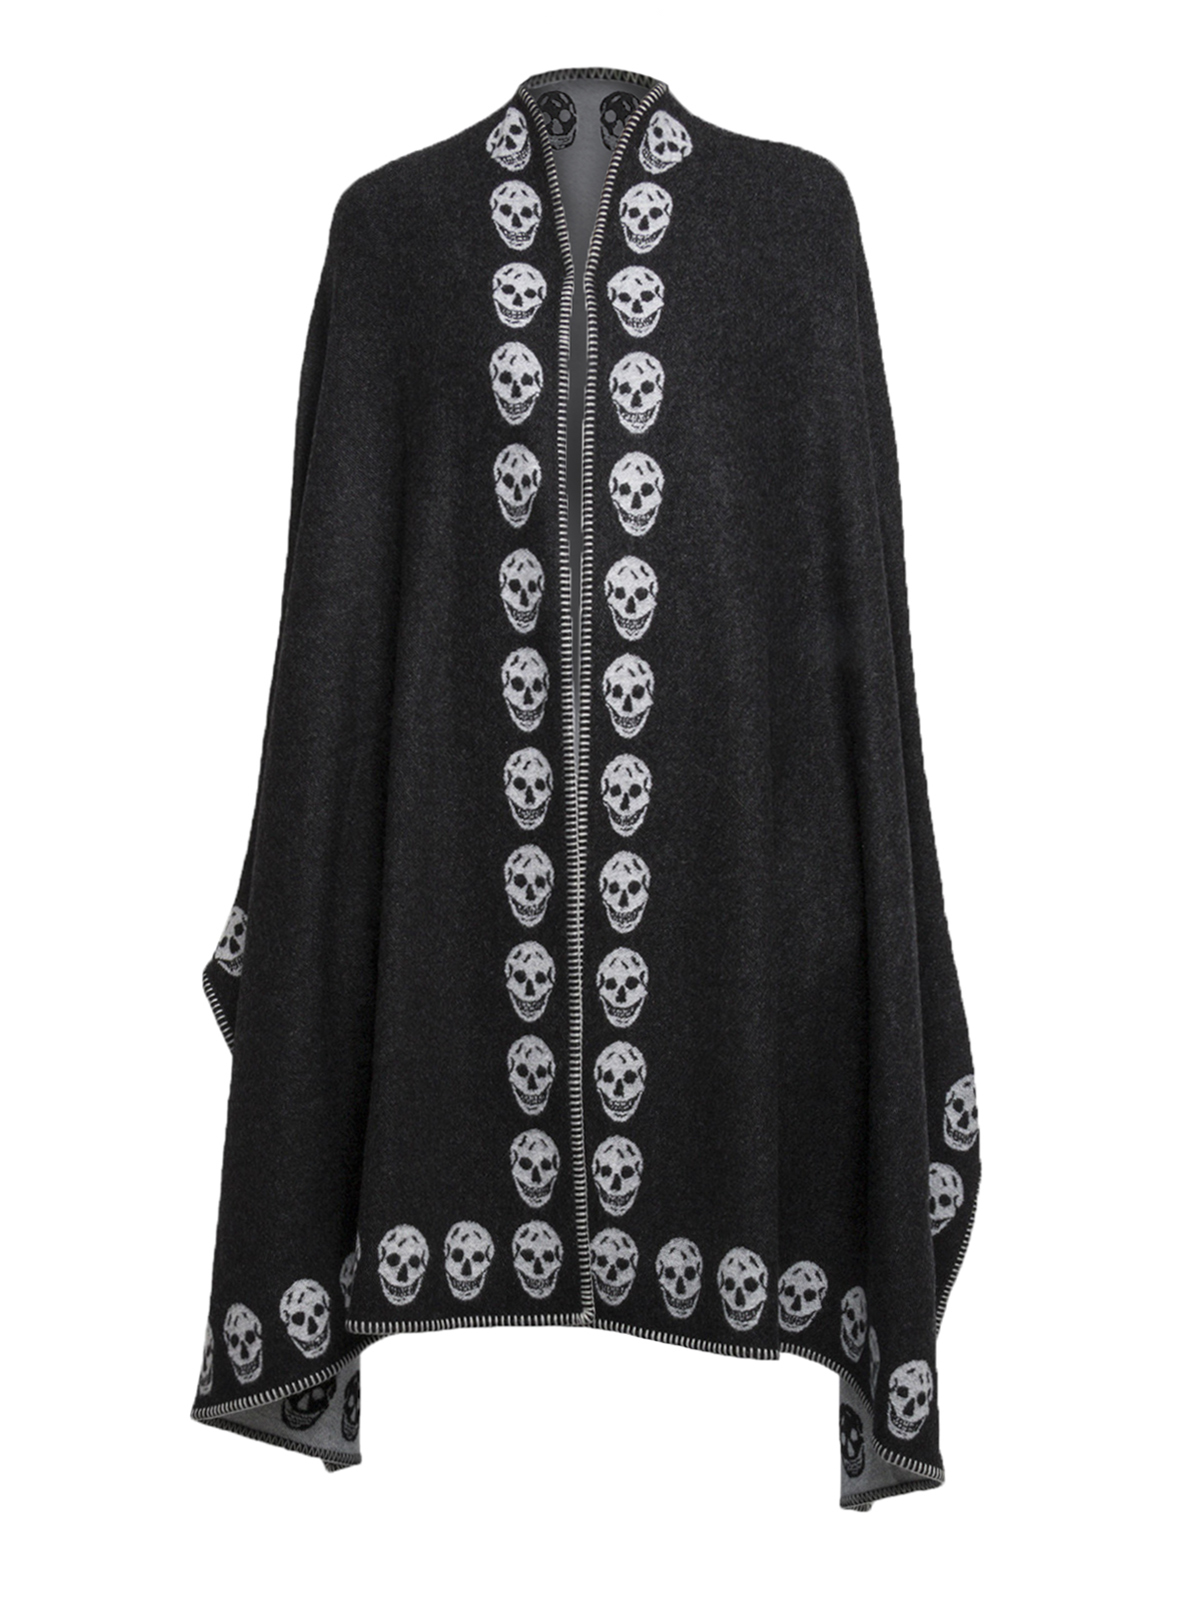 2018 New Cheap Price COATS & JACKETS - Capes & ponchos Alexander McQueen Buy Cheap For Cheap Discount 100% Authentic Get Online Latest Collections 5358xbyoW4